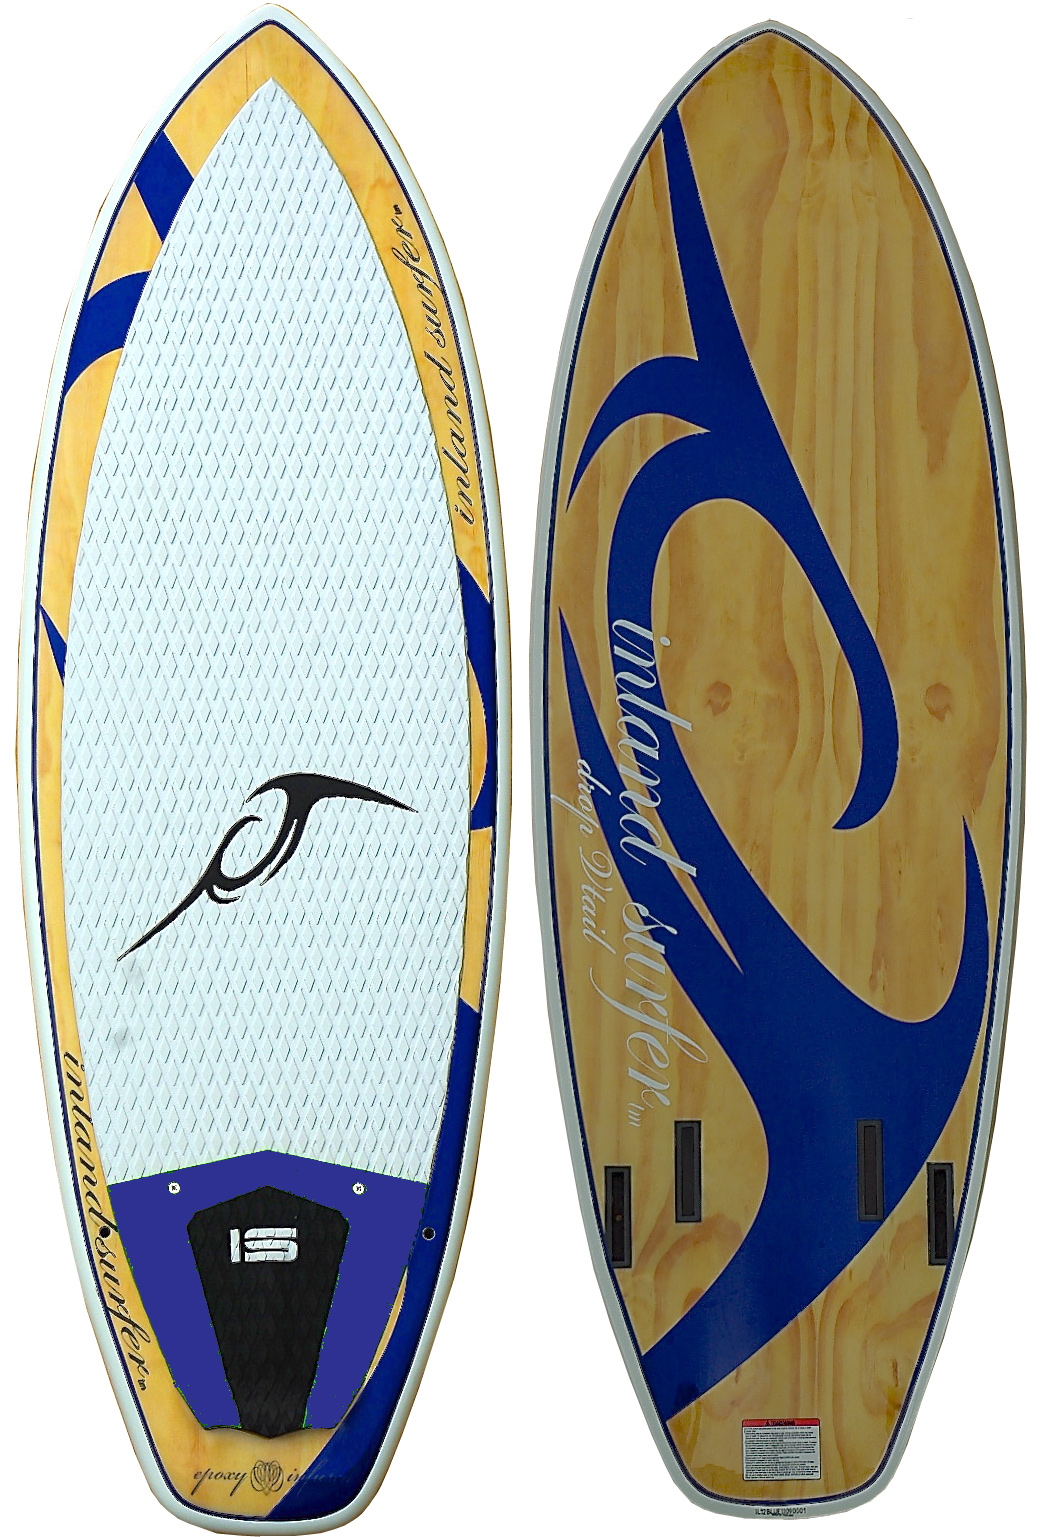 "Surf There are more Blue Lakes out there in the world for a reason. After 12 years it is the most fundamental wake surfboard for making summers awesome. In its twin configuration it is easy to develop and grow on. As a quad you can leverage the Vortex Channel and Drop V tail to bring your riding to the next level. Capable of large aerials, surface spins and giant bottom turns the Blue Lake is the most accomplished model ever.Key Features of the Inland Surfer Blue Lake V2 Wakesurfer 5ft 4in: Epoxy Infused Technology - our top secret way of fully soaking the fiberglass with epoxy to create the strongest bond. WoodLoc - our process that inserts laminated layers of wood into the board top and bottom platform to increase strength, rigidity, stiffness and overall performance. Vortex Channel - A concave channel near the front of the board that helps speed up water flow and injects air under the bottom of the board, producing faster speeds and avoids pearling (nose diving). Progressive Edge - The rail geometry and construction that holds the board close to the wake without creating unwanted drag. Fin options - number of fin options available. Rear Kick - EVA traction with raised rear kick pad for incredible foot hold. ROCKET Rocker - This profile has been designed to provide the absolute maximum down-the-line speed without sacrificing edge to edge performance. Drop ""V"" tail - A channel near the tail of the board that provides maximum release of water tension from under the board. Ability Level: The ability level recommendation for this board is beginner to advanced. Weight Range: The weight range recommendation for this board is 100lbs. to 250+lbs. depending on wake size. Specs: 5'4"" x 20.5"" x 1.75"" - 8 lbs. Quad fin option. Note: All surf style boards come with 1 pair of standard 9cm surf fins only. - $699.00"